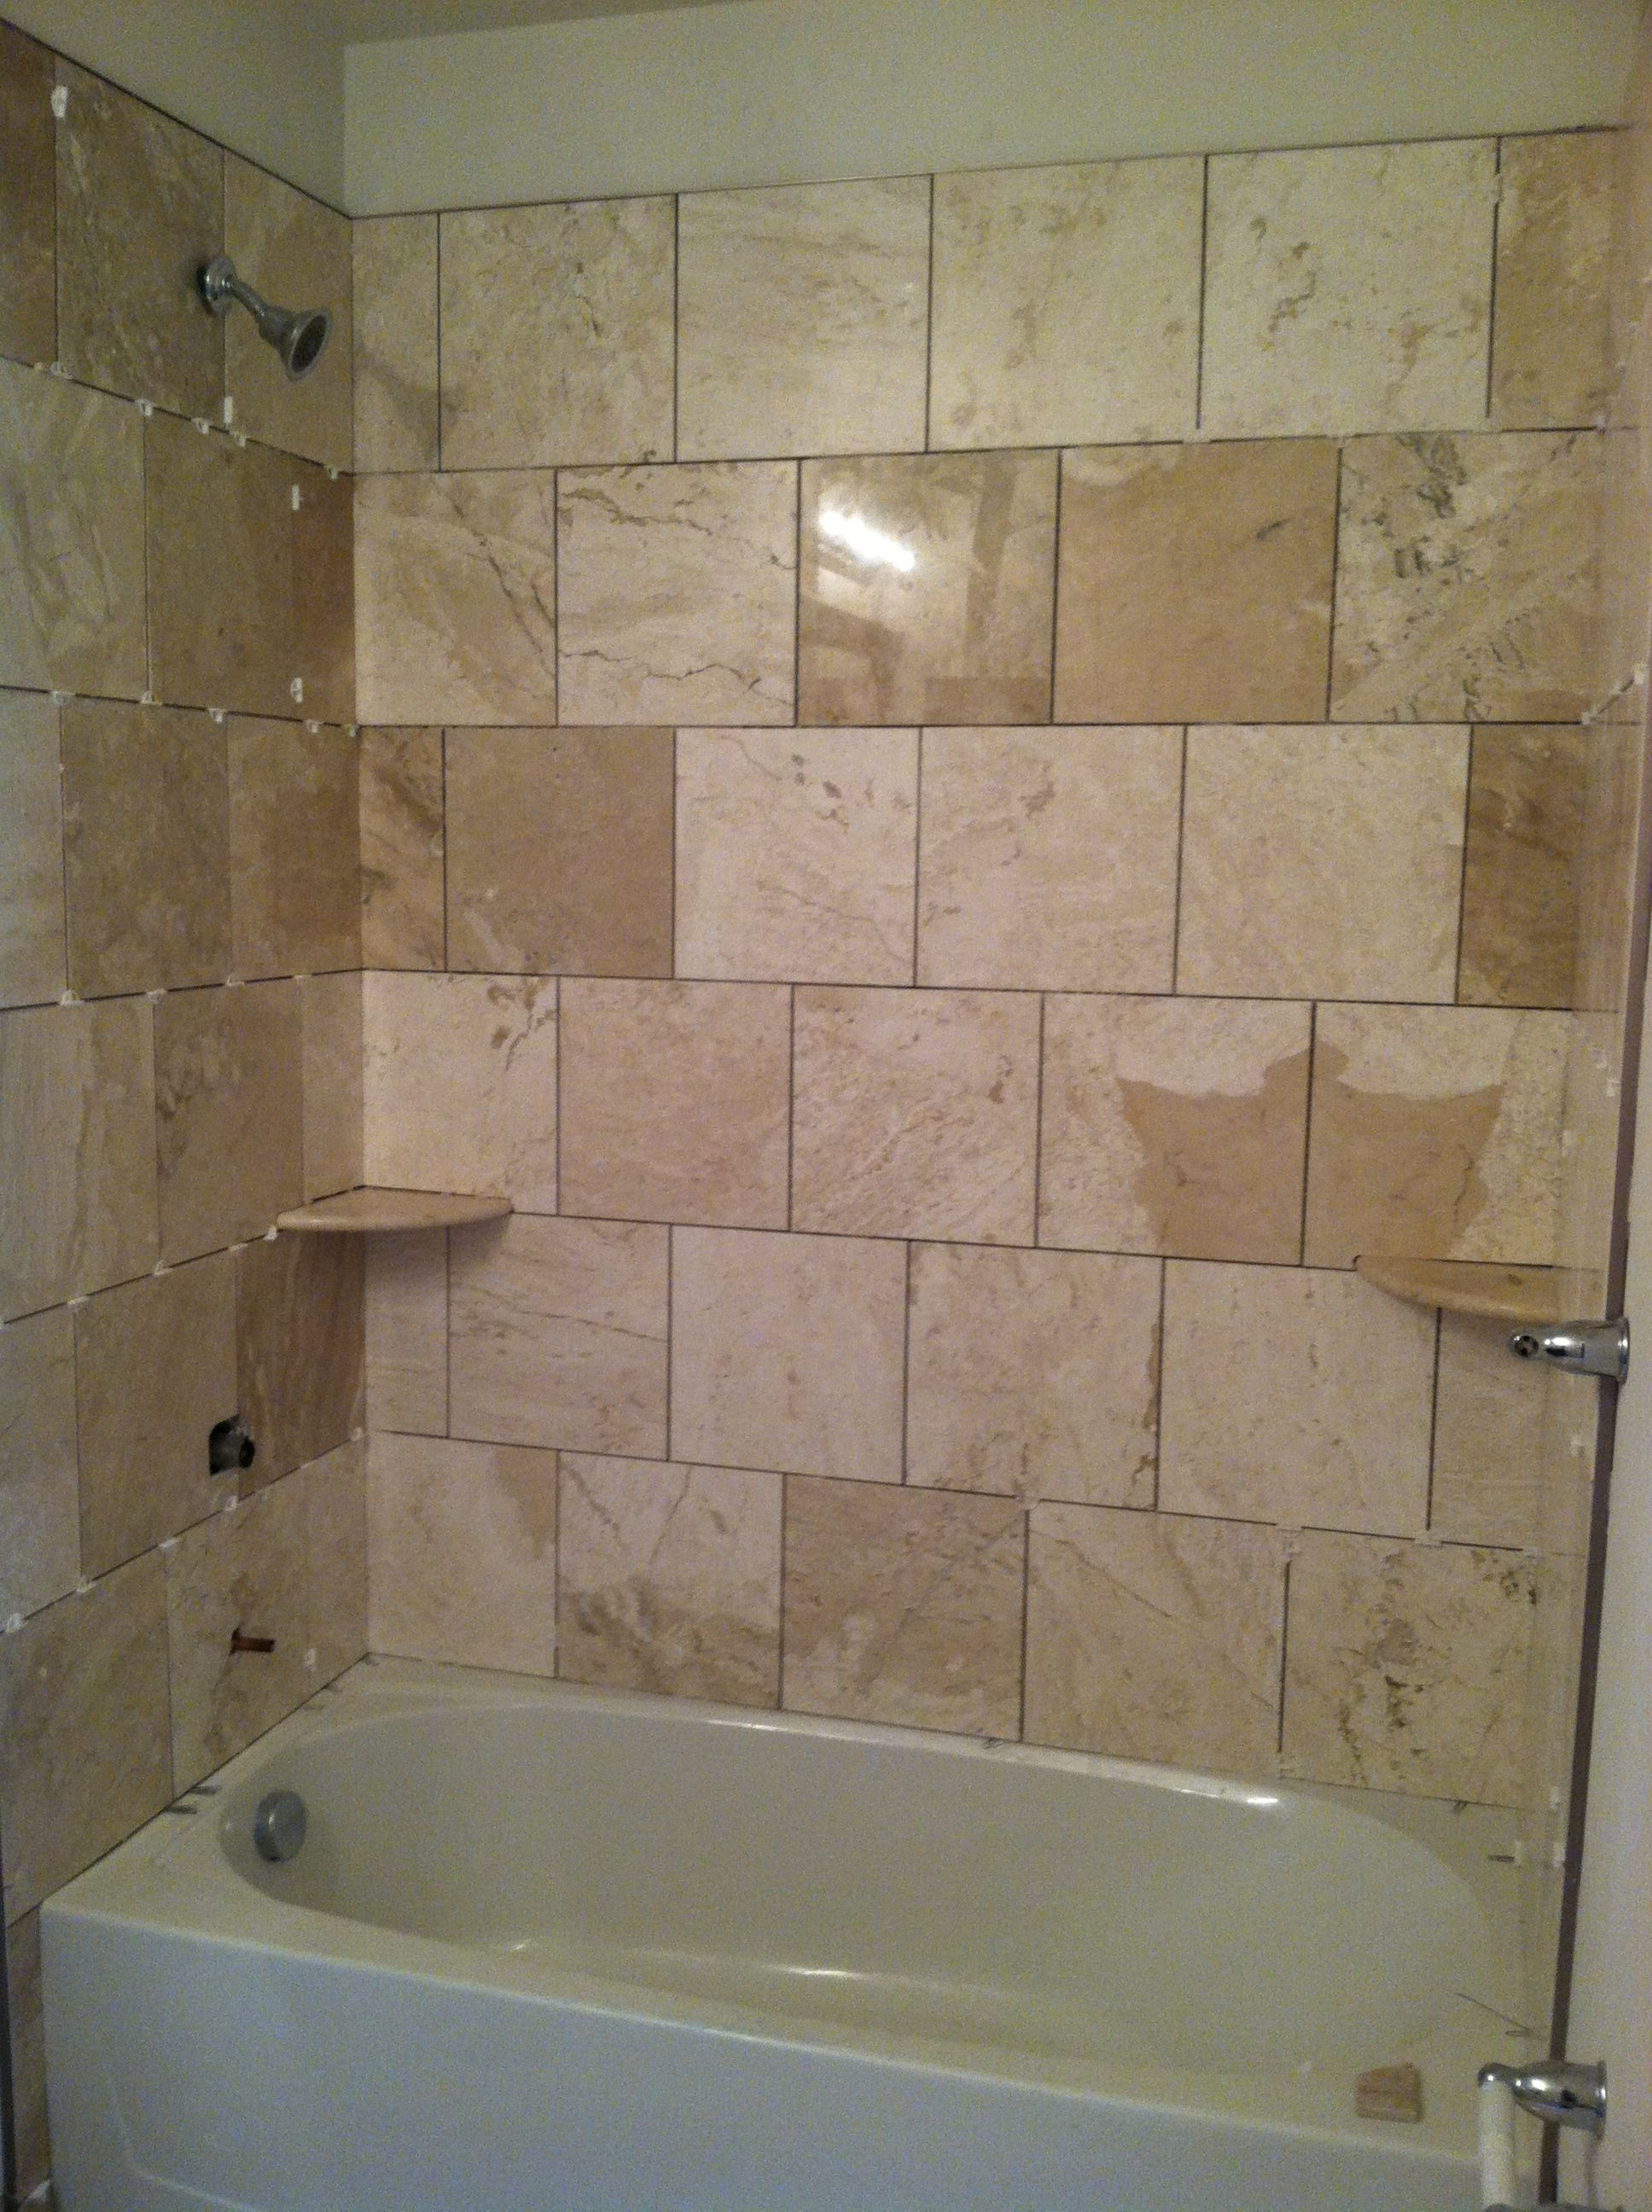 Shower Designs Small Bathrooms With Nice Stack Bond Tile Shower Designs For Tile  Shower Designs Small Bathroom / Bathroom Shower Designs Sm.